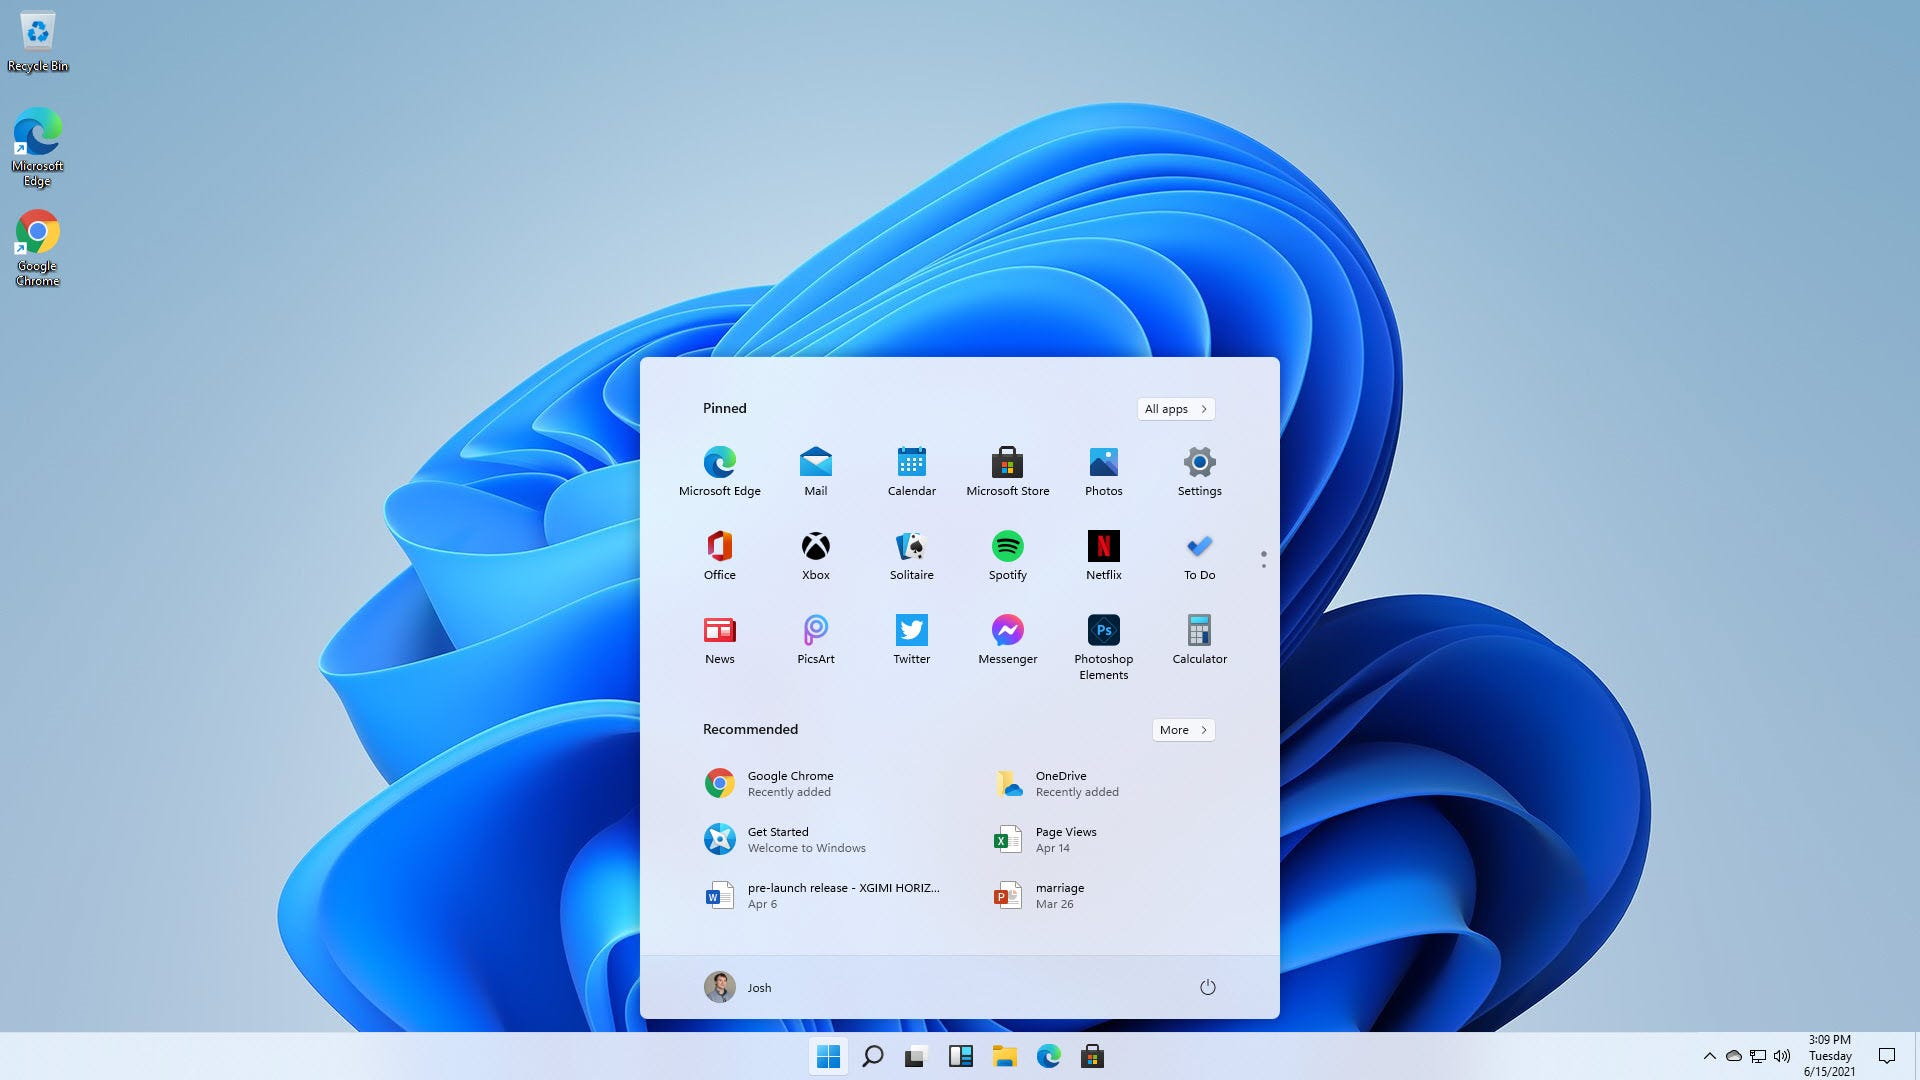 A big start menu in the middle of the screen